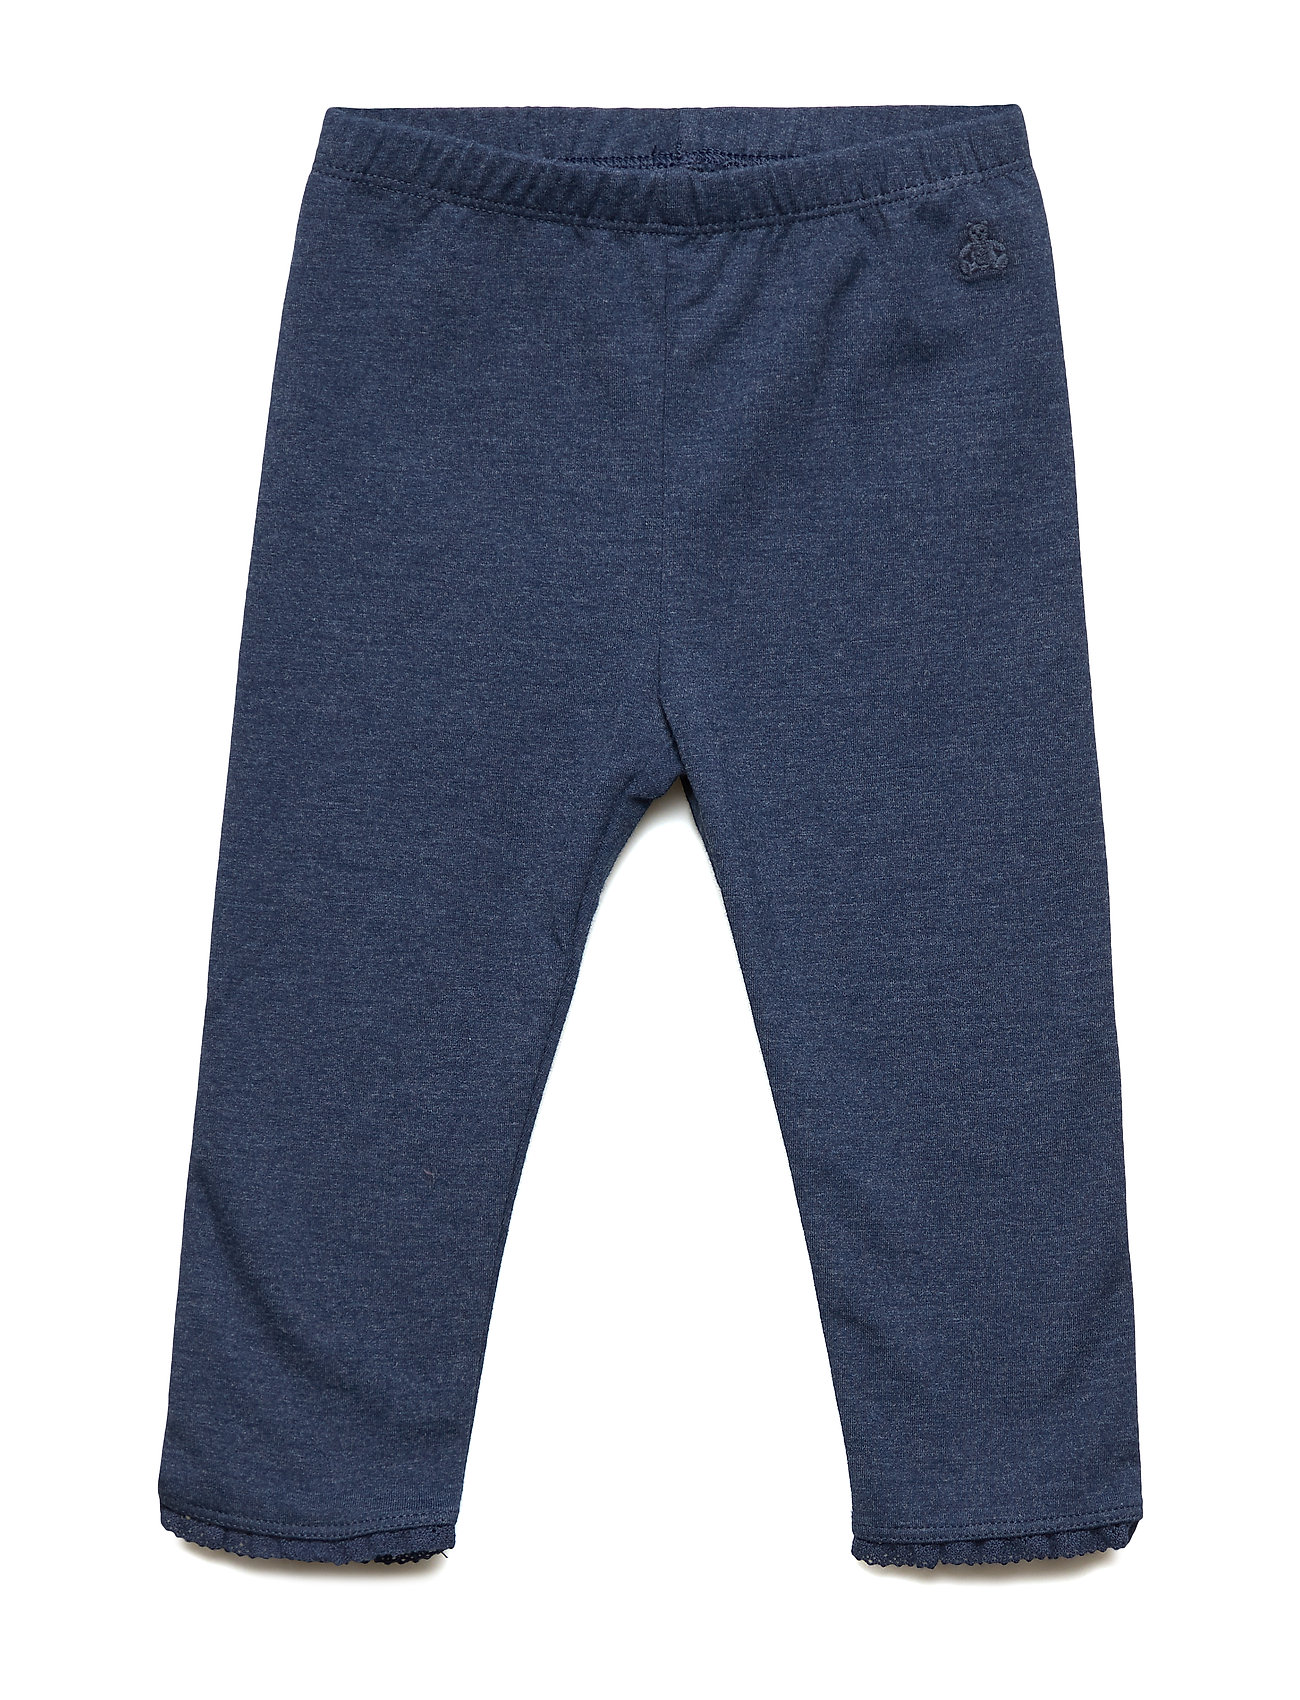 GAP Baby Lace-Trim Leggings - BLUE HEATHER